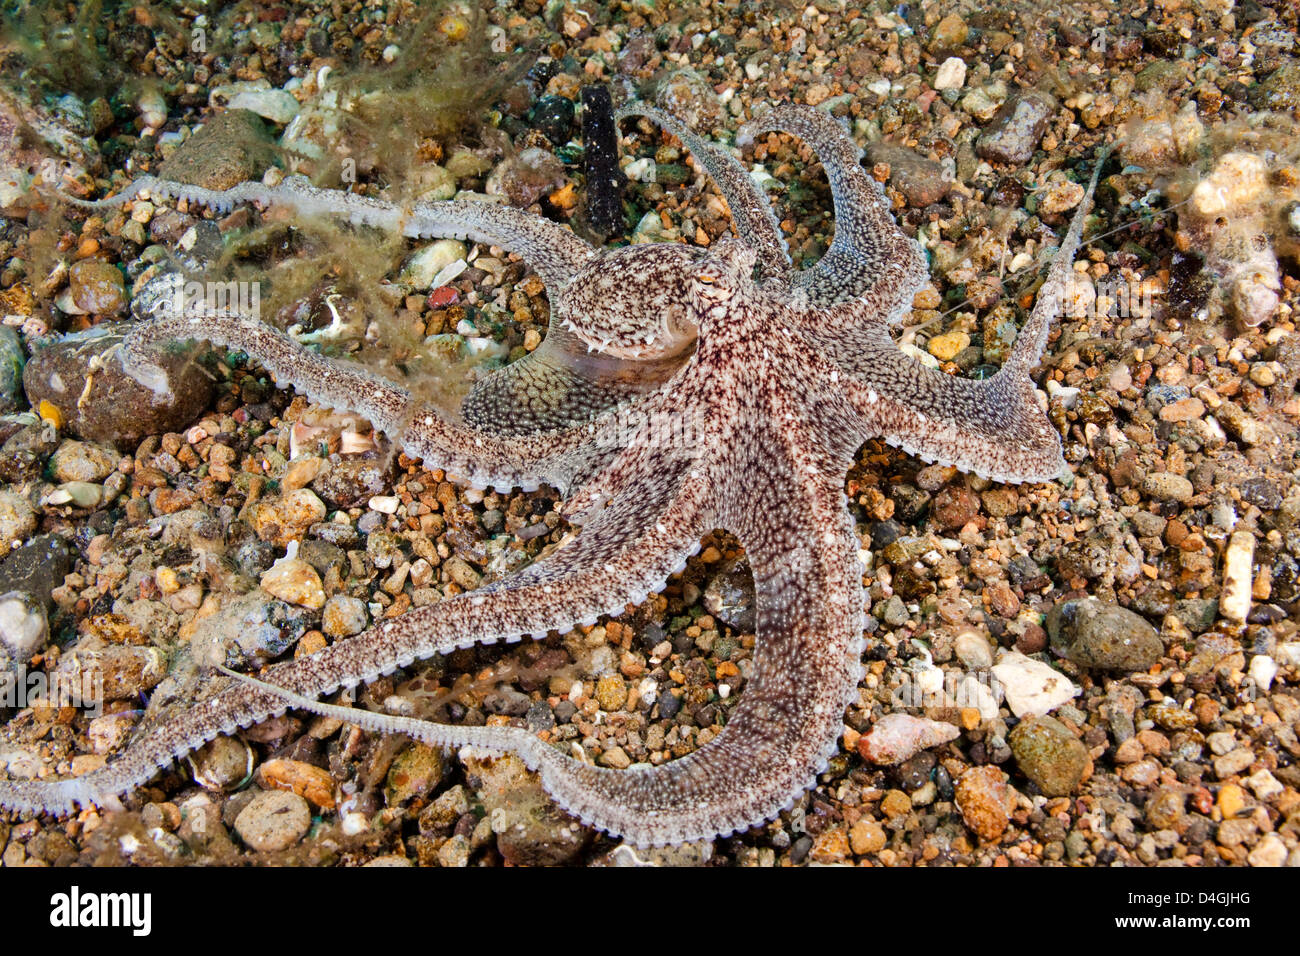 An undescribed species of long-armed octopus, Octopus sp, Anilao, Philippines. - Stock Image